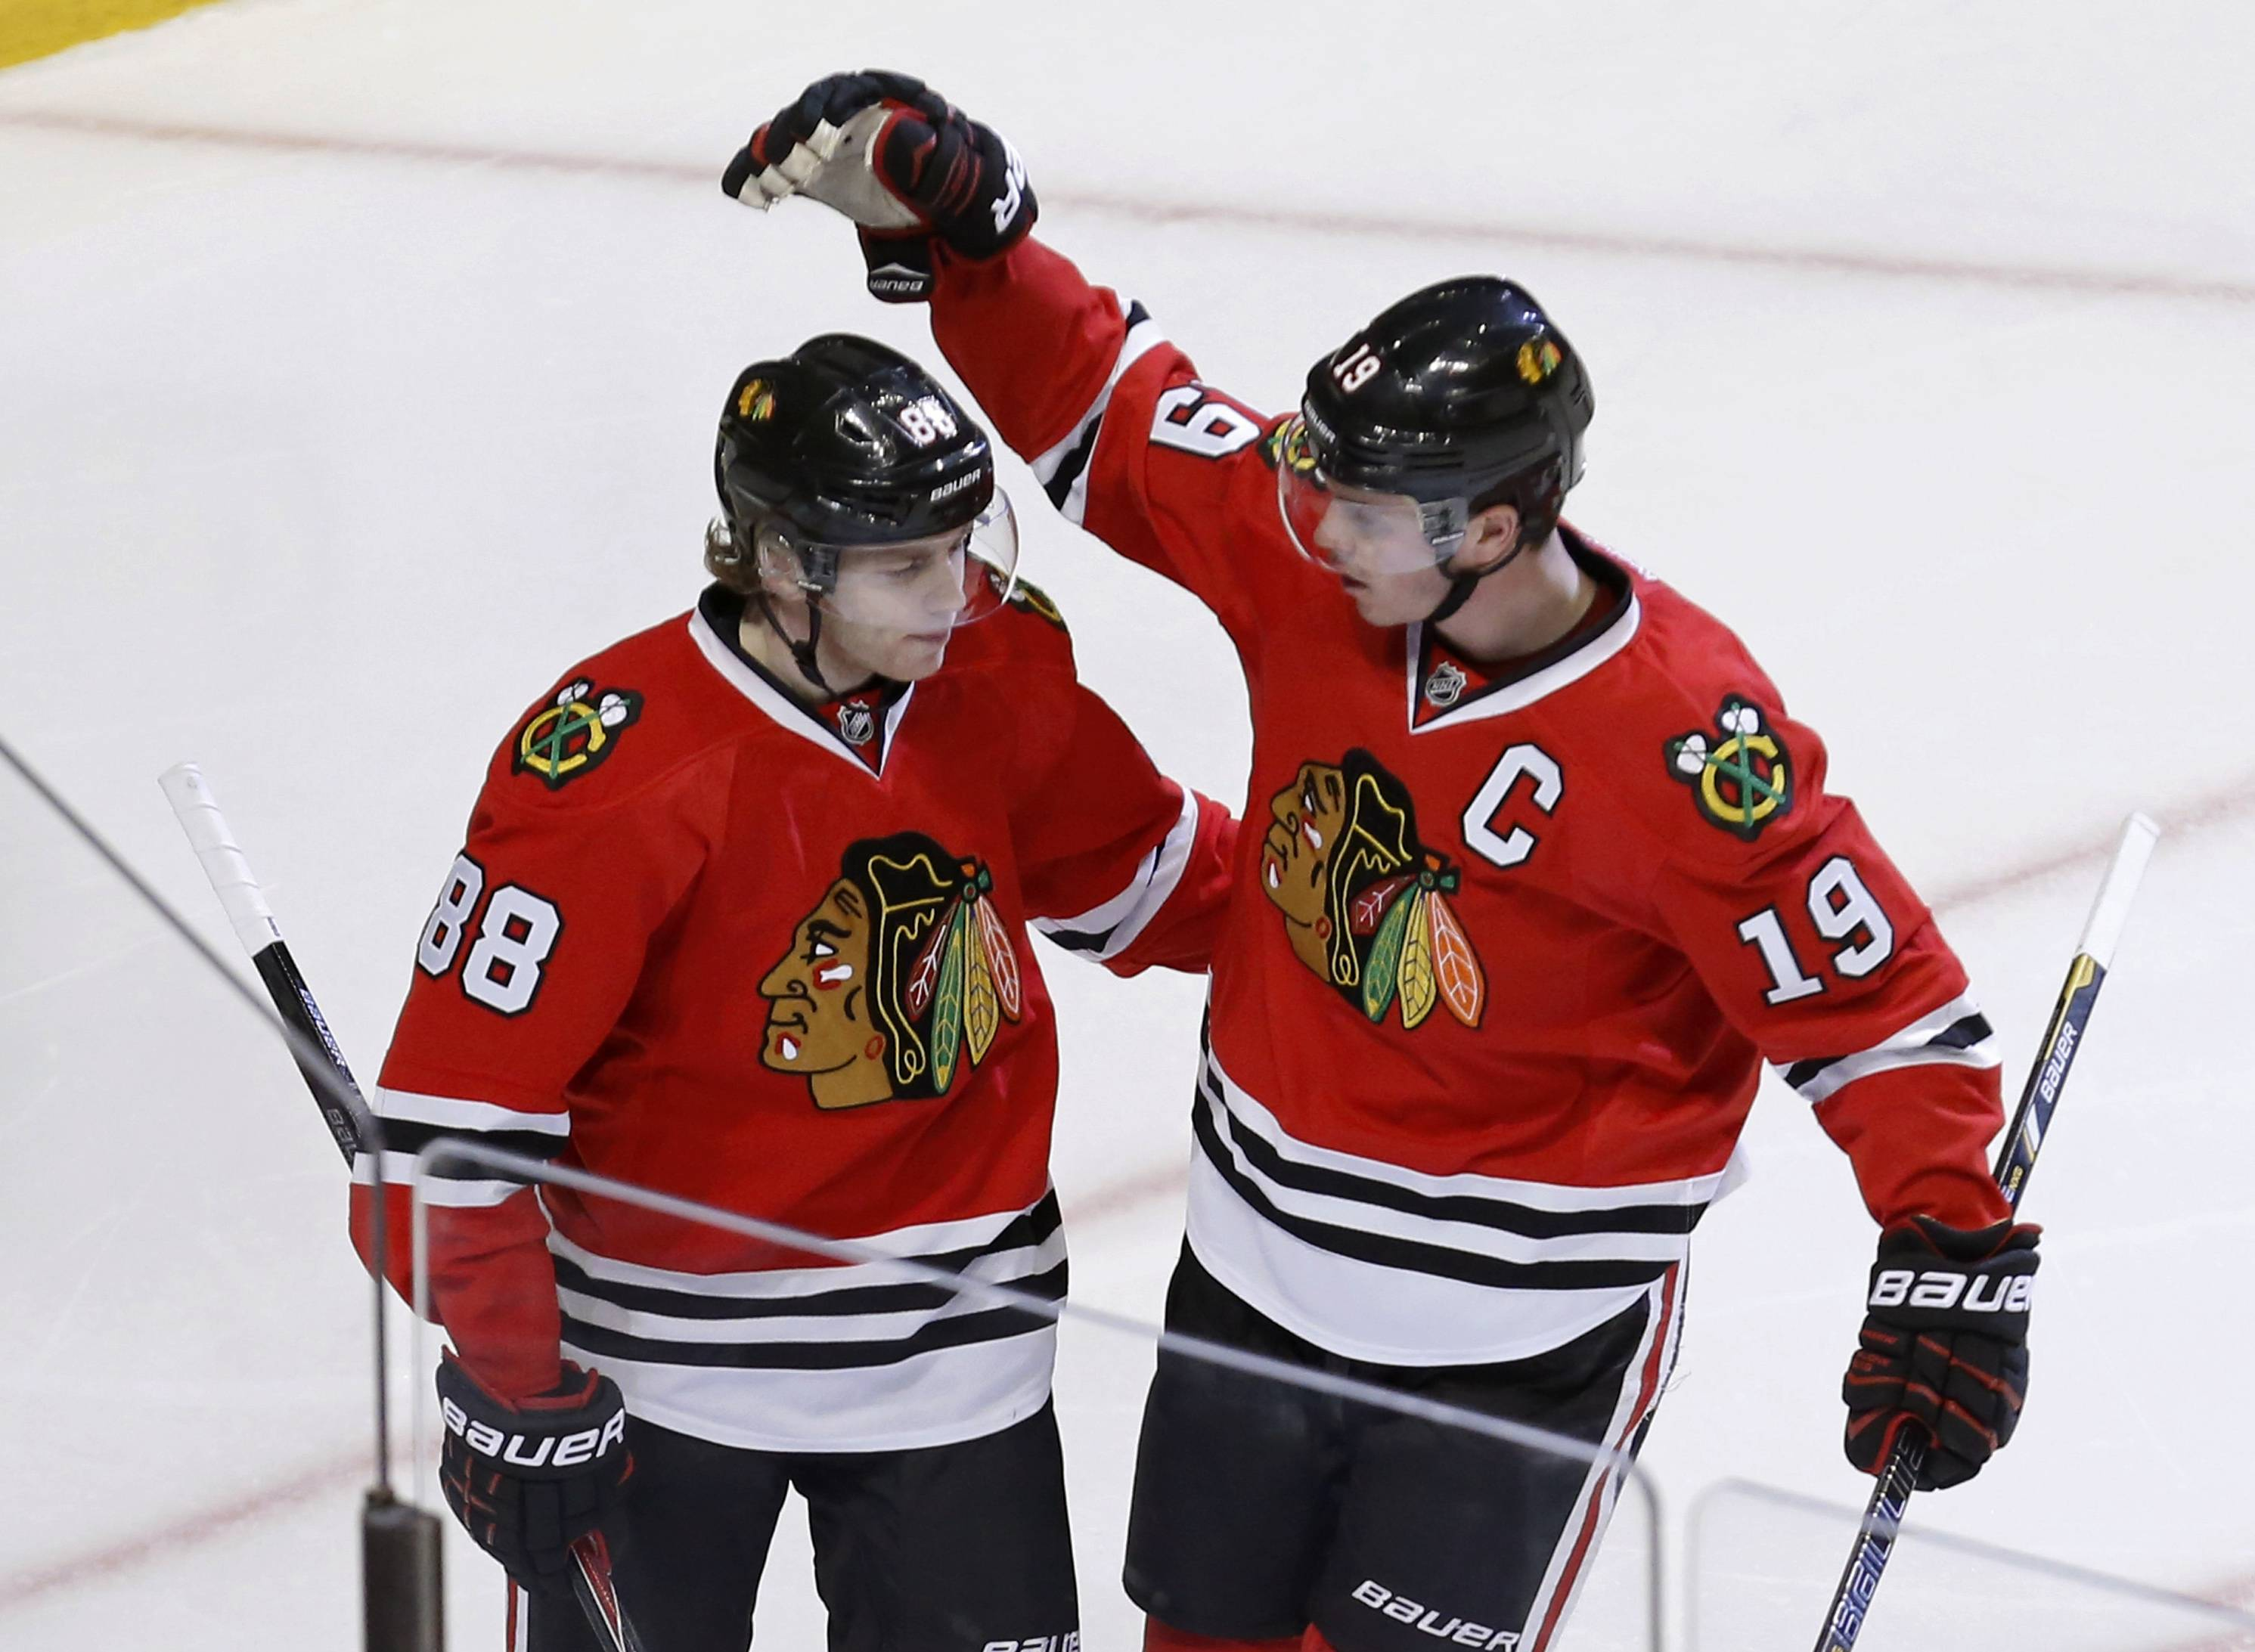 Patrick Kane, left, and Jonathan Toews, celebrating a Toews goal last month, are excited to help the Blackhawks begin their defense of the Stanley Cup.